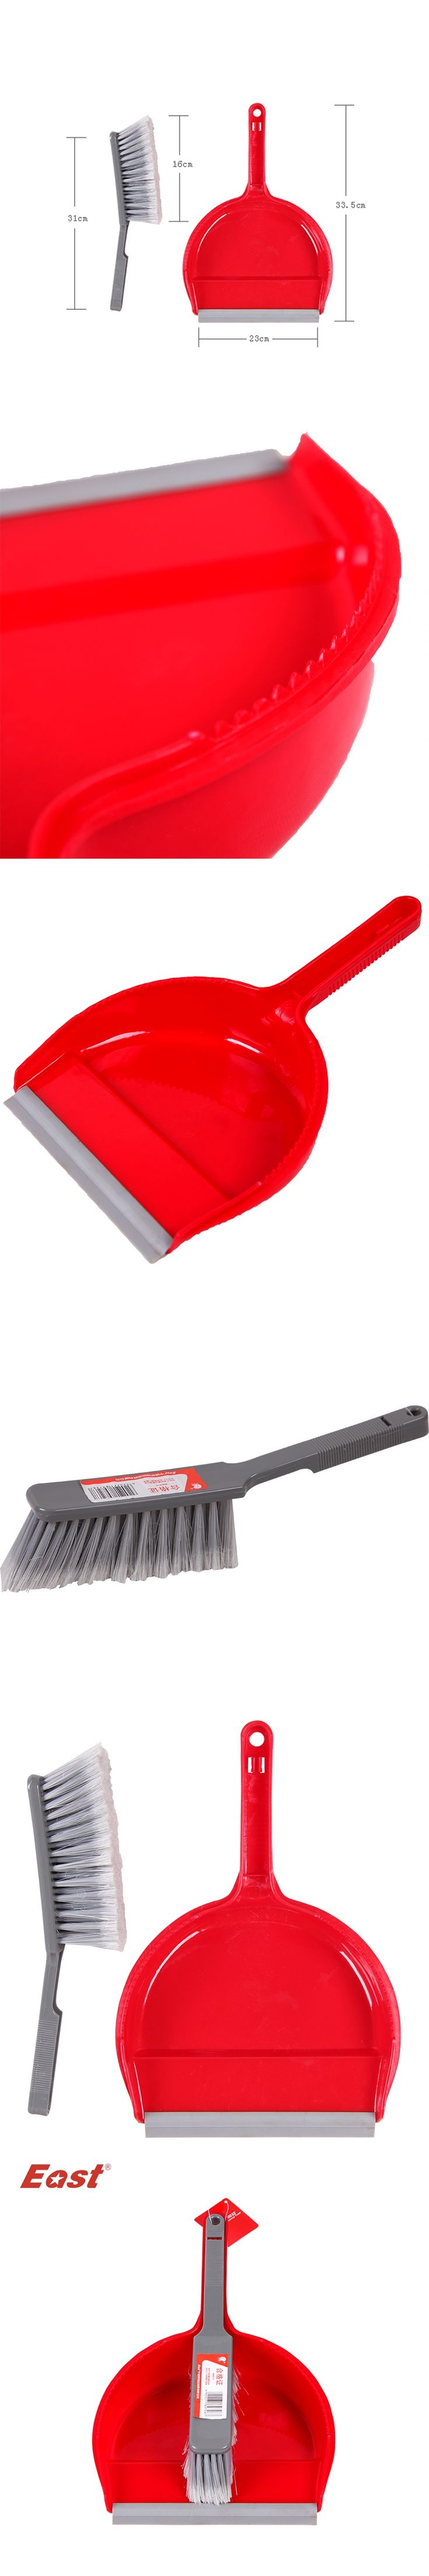 East Economic Broom & Dustpan set for cleaning keyboard talbe desk brush sweeper plastic tool cleaning tools factory selling